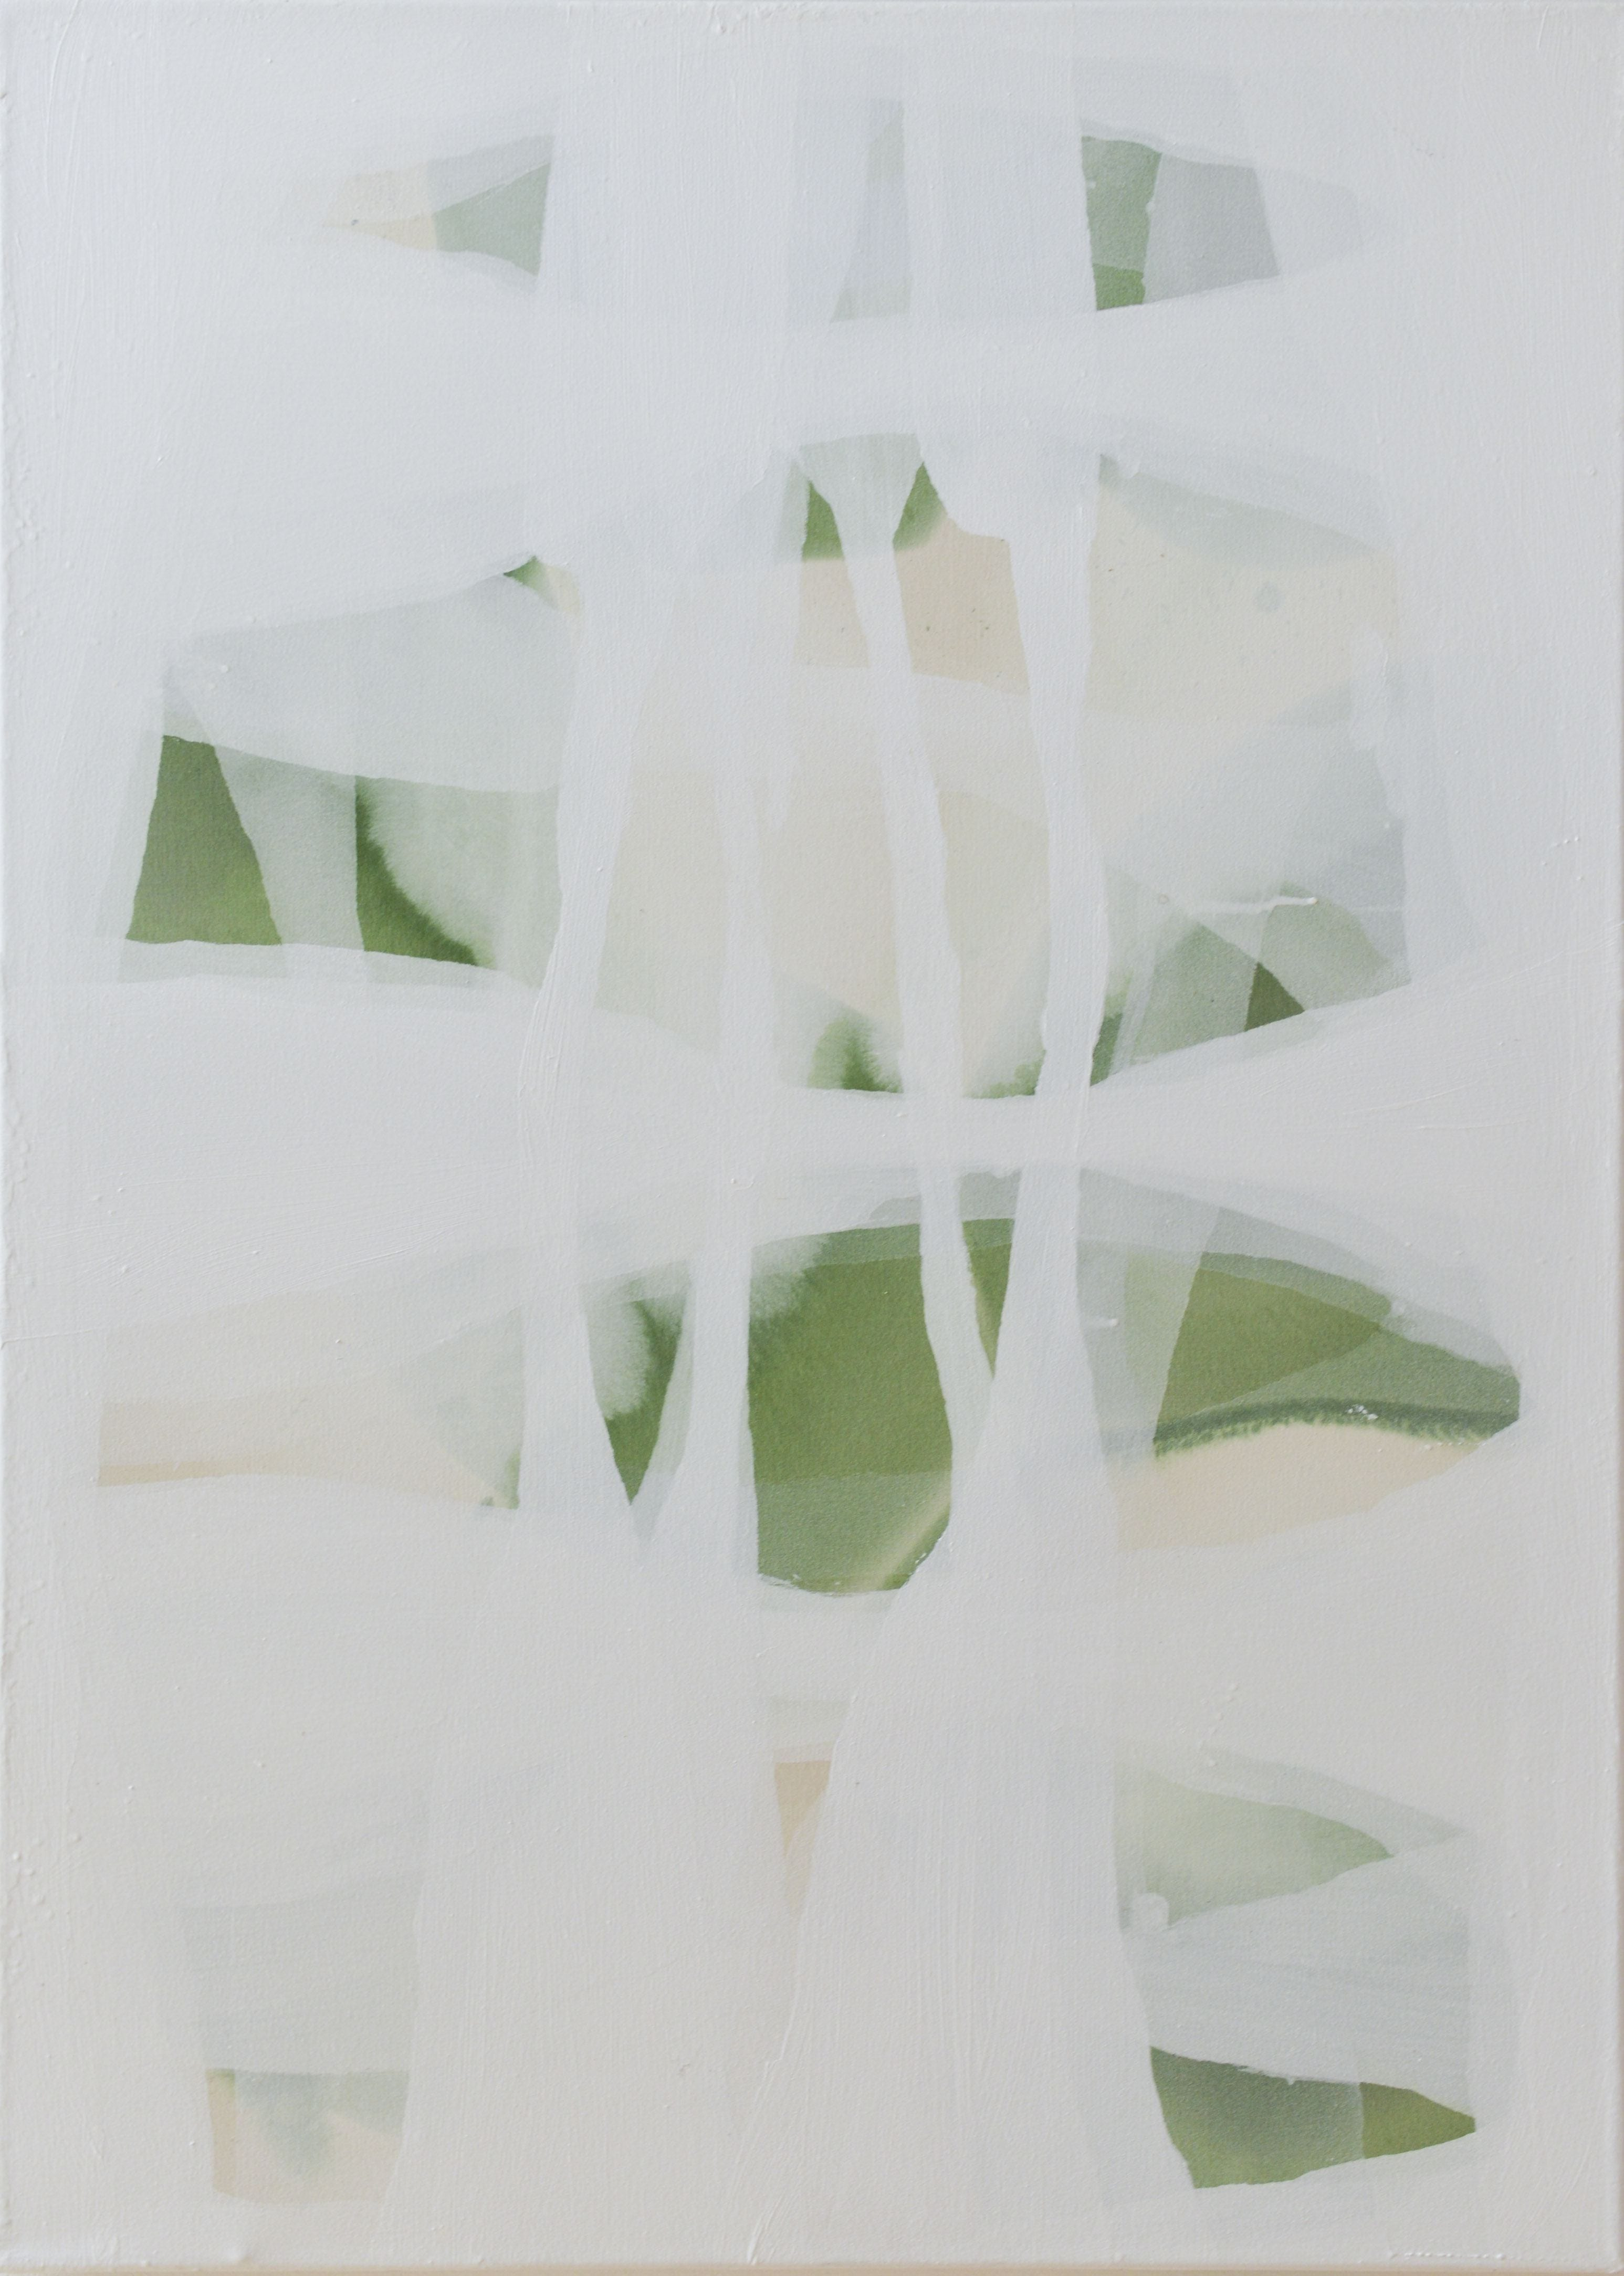 Ian McKeever Day Painting, 2013-2014